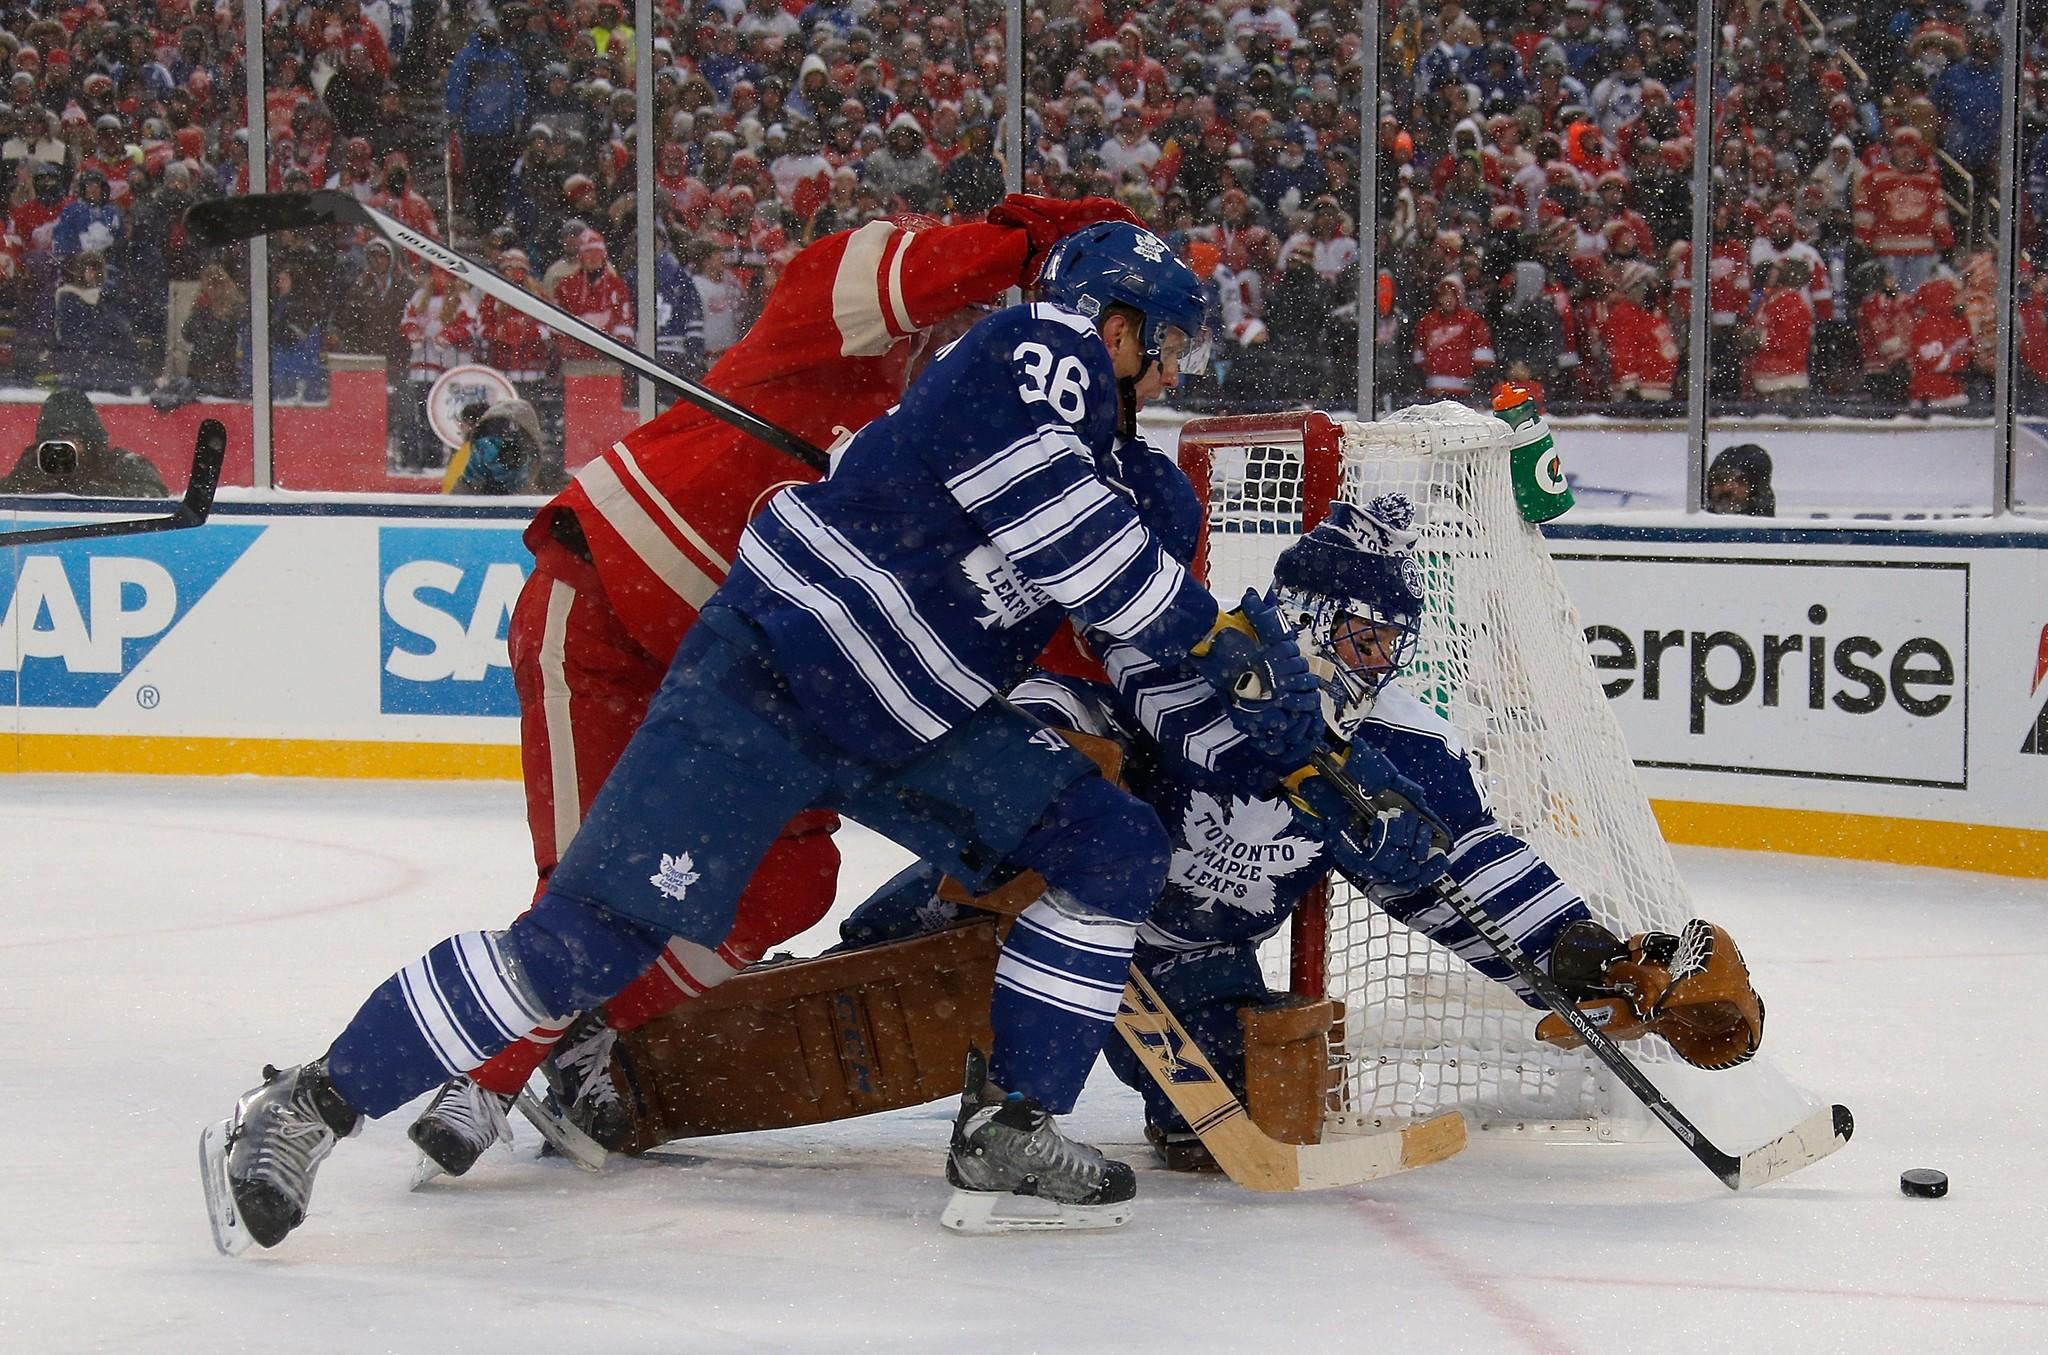 Goalie Jonathan Bernier and Carl Gunnarsson of the Toronto Maple Leafs try to keep the puck from Daniel Alfredsson of the Detroit Red Wings during the 2014 NHL Winter Classic.